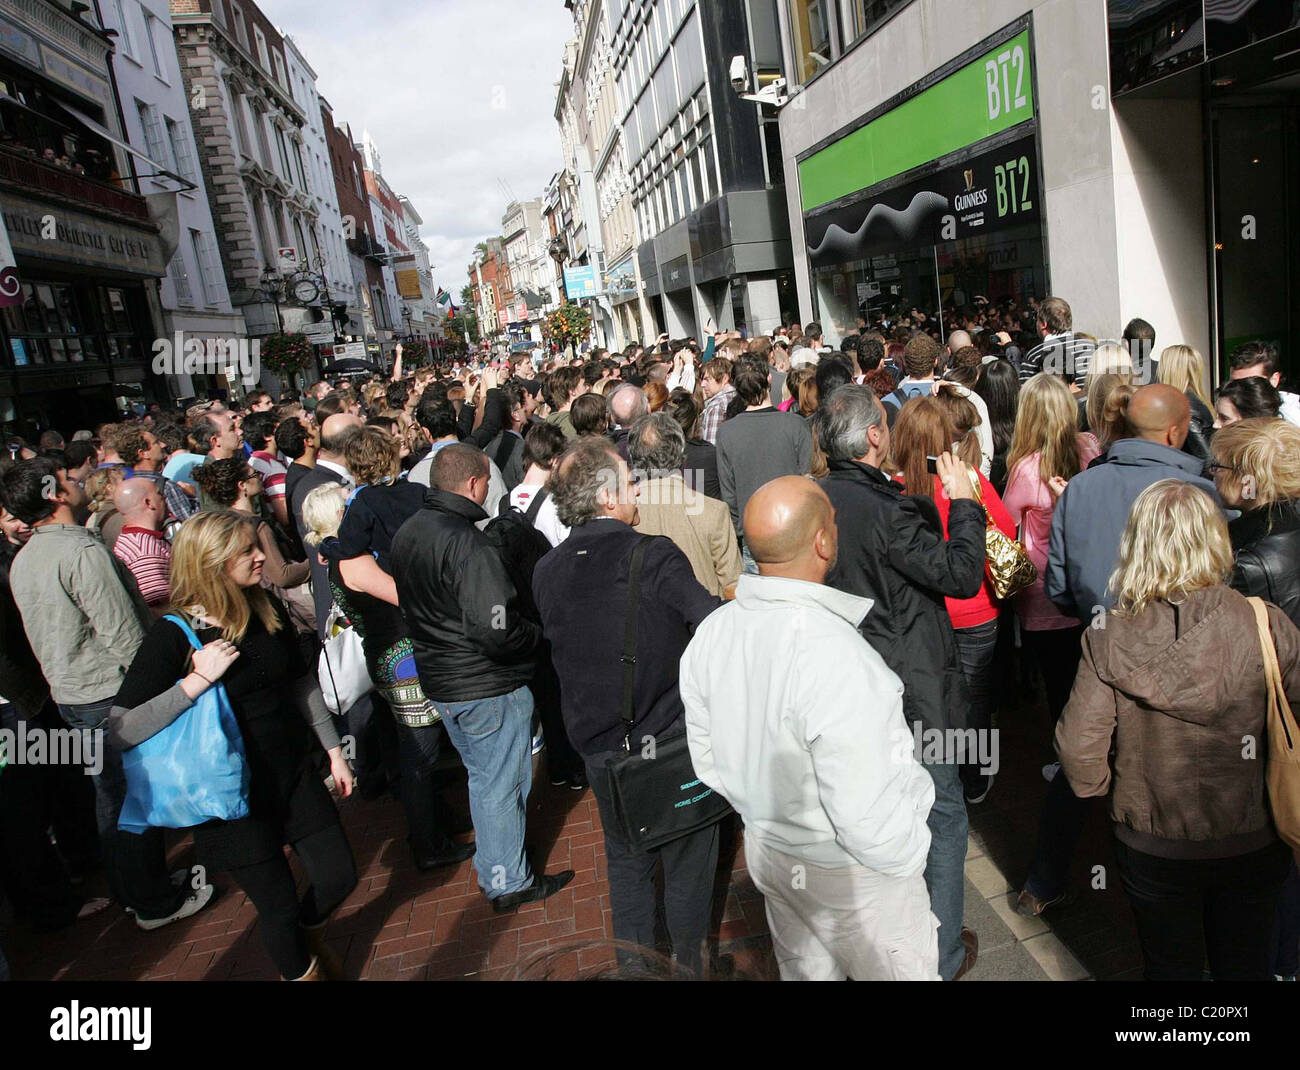 Crowds watching Ronnie Wood playing with his son Jesse's band 'Black Swan' at BT2 in Grafton Street - Stock Image